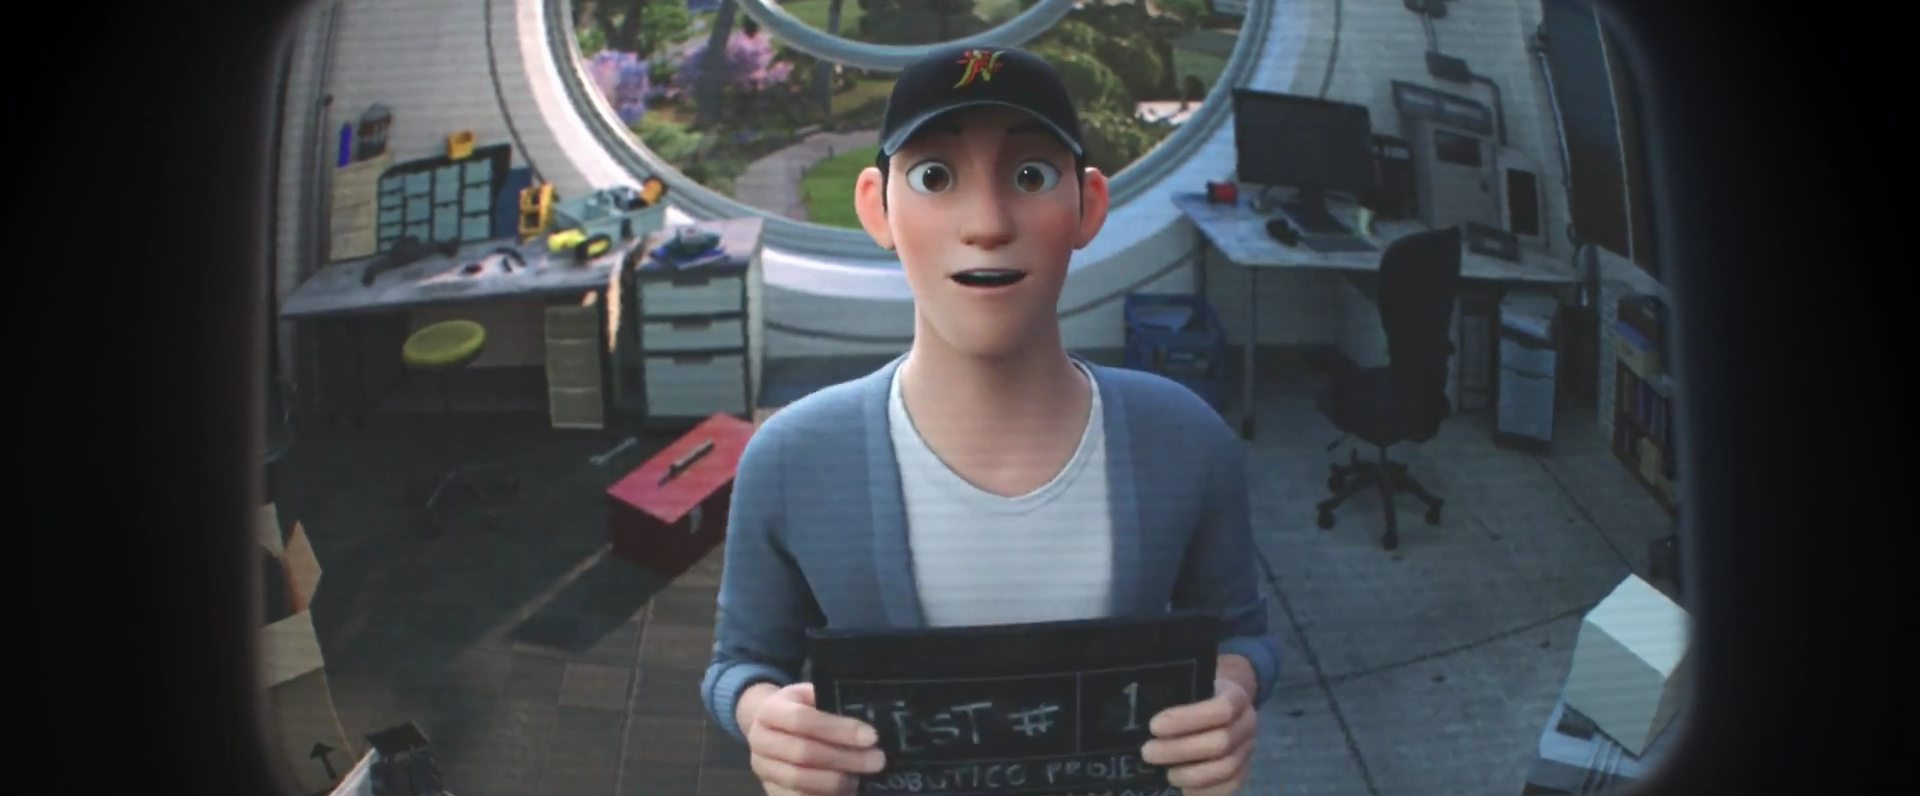 tadashi big hero 6 sequel